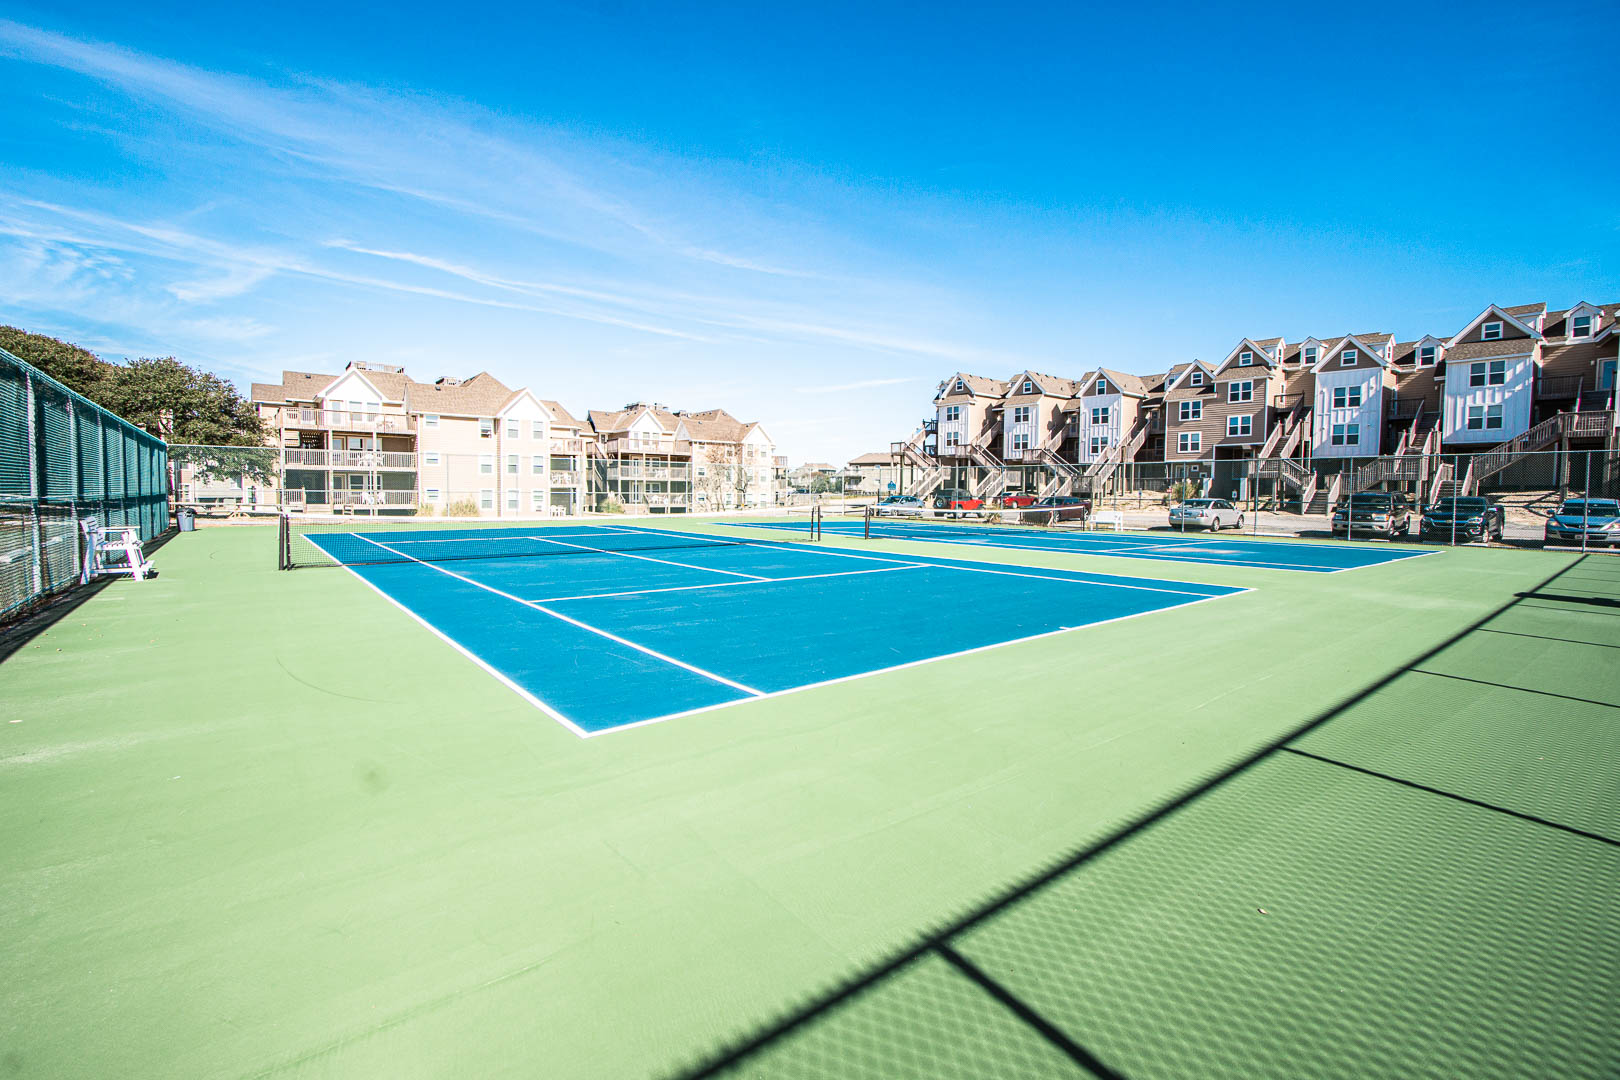 A spacious tennis court at VRI's Barrier Island Station in North Carolina.